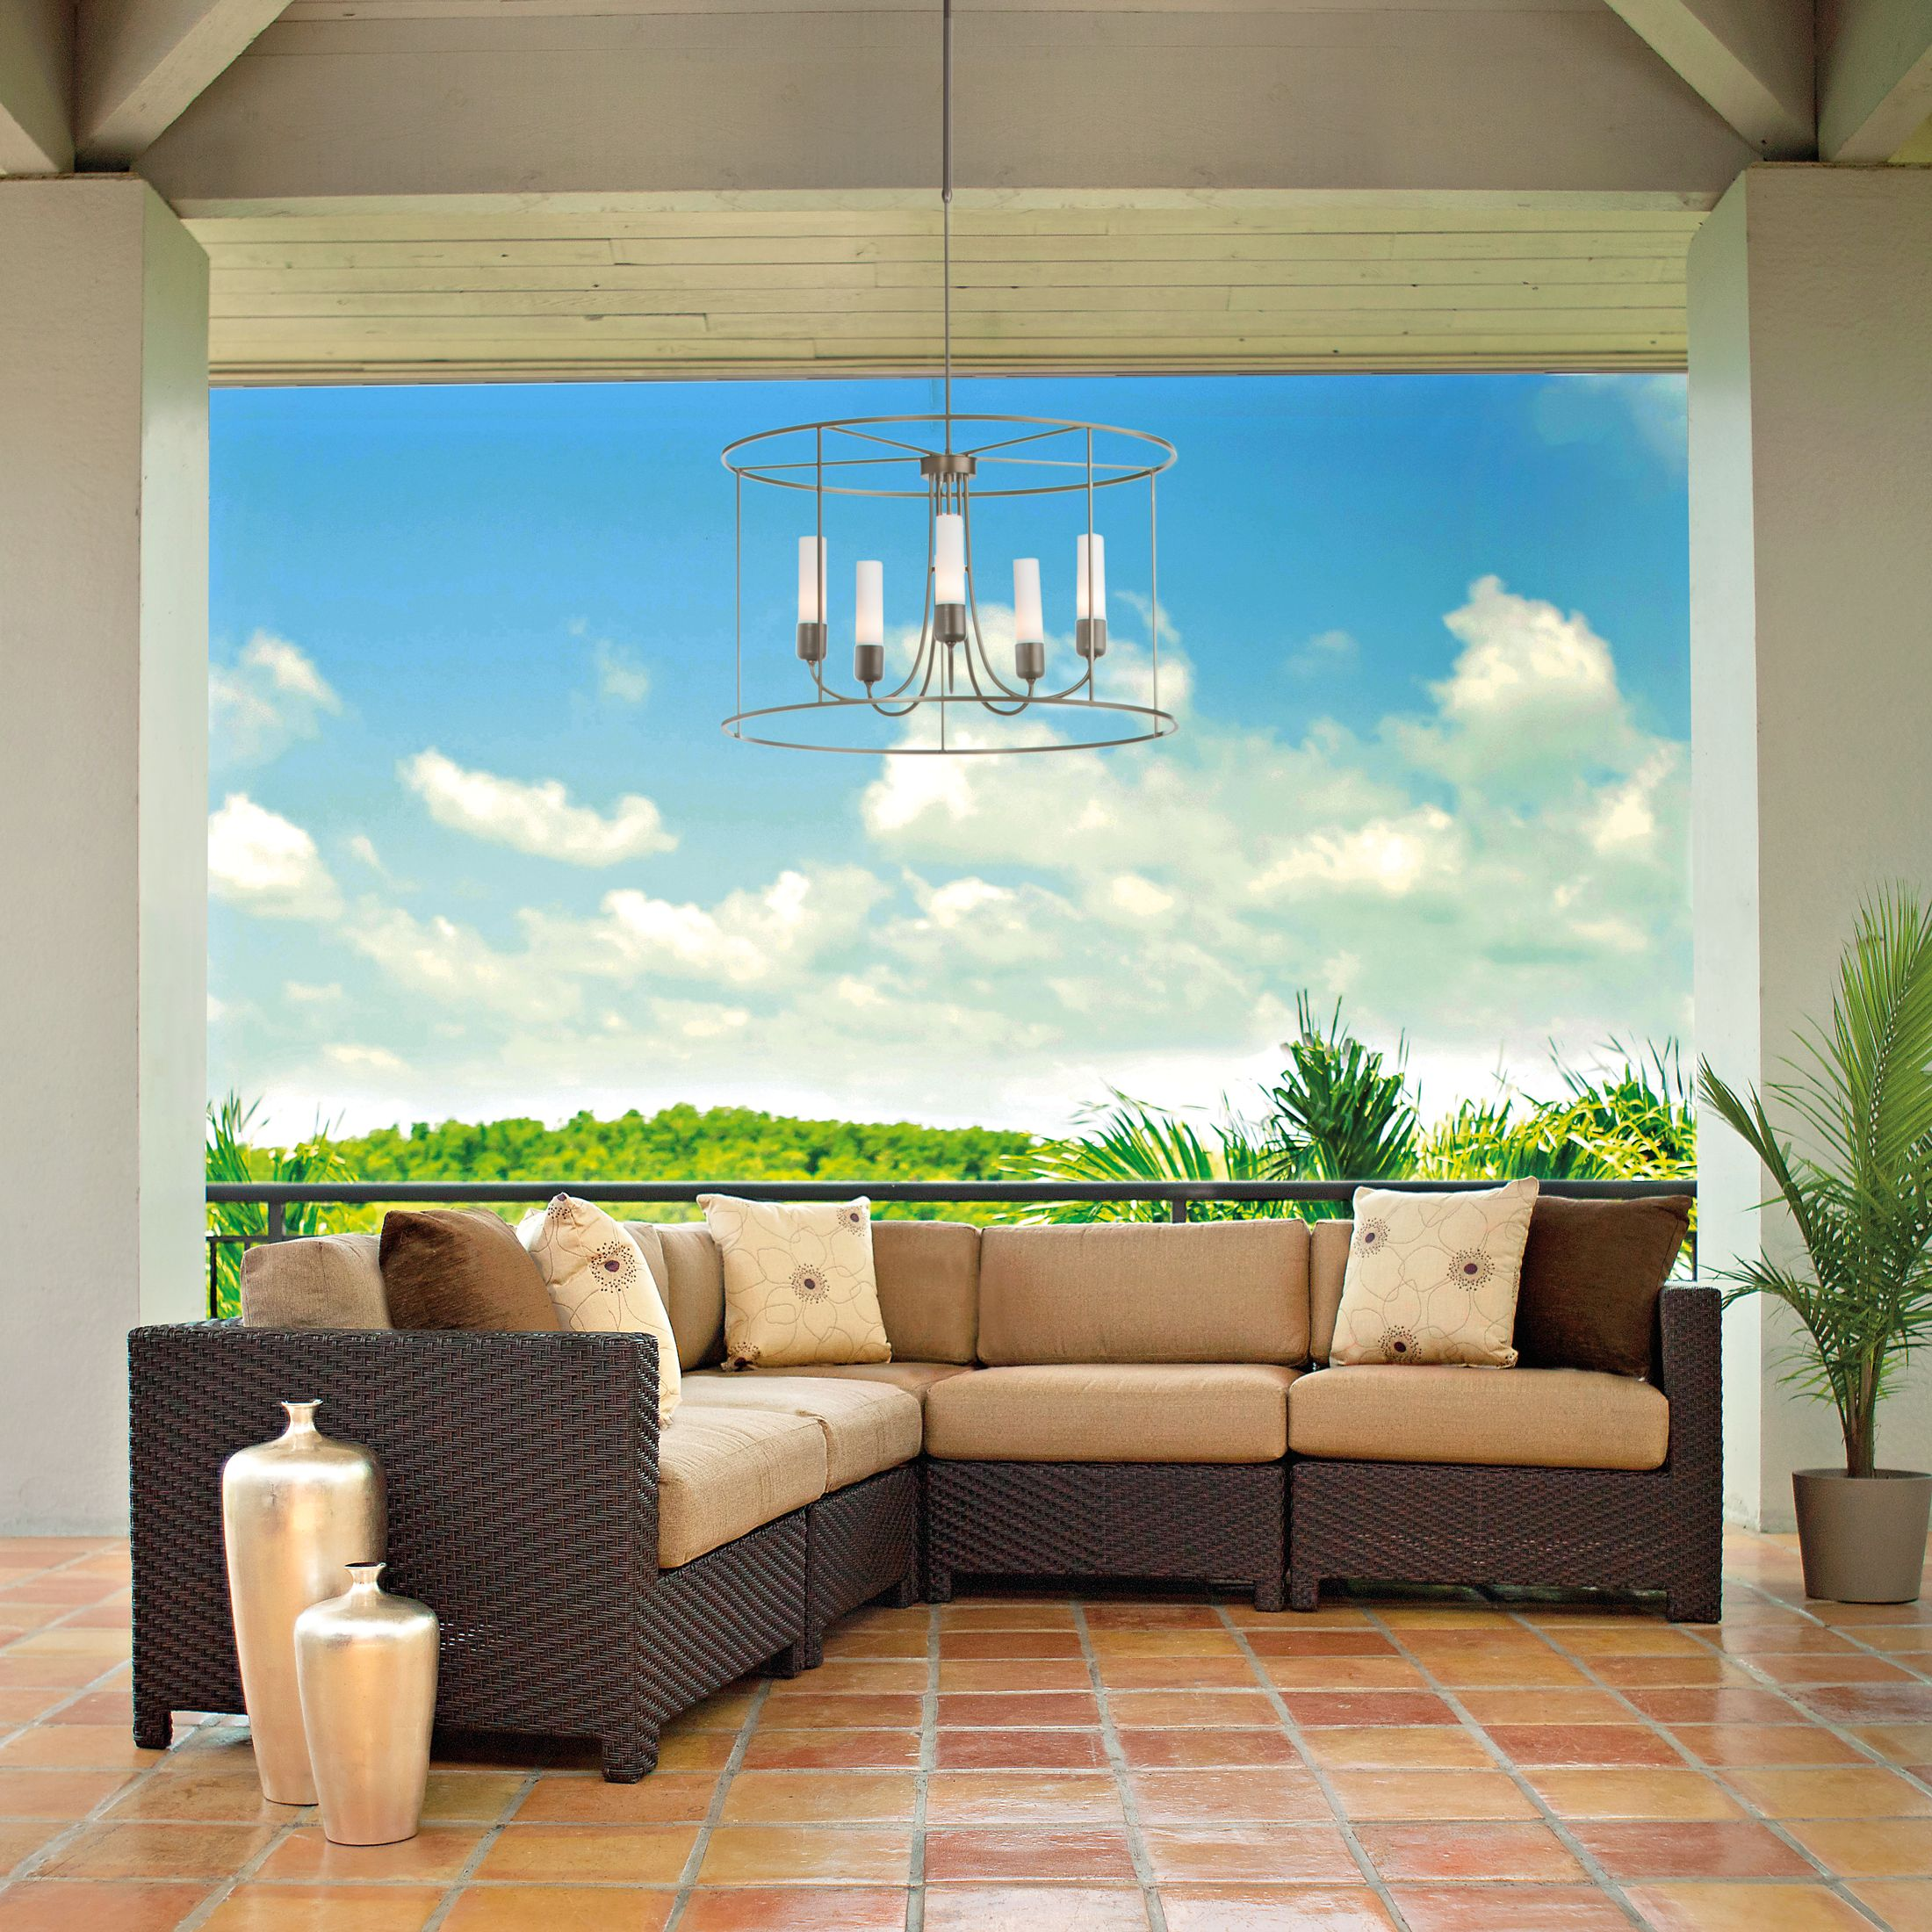 outdoor living - SHOP Hubbardton Forge on Outdoor Living Shop id=74474